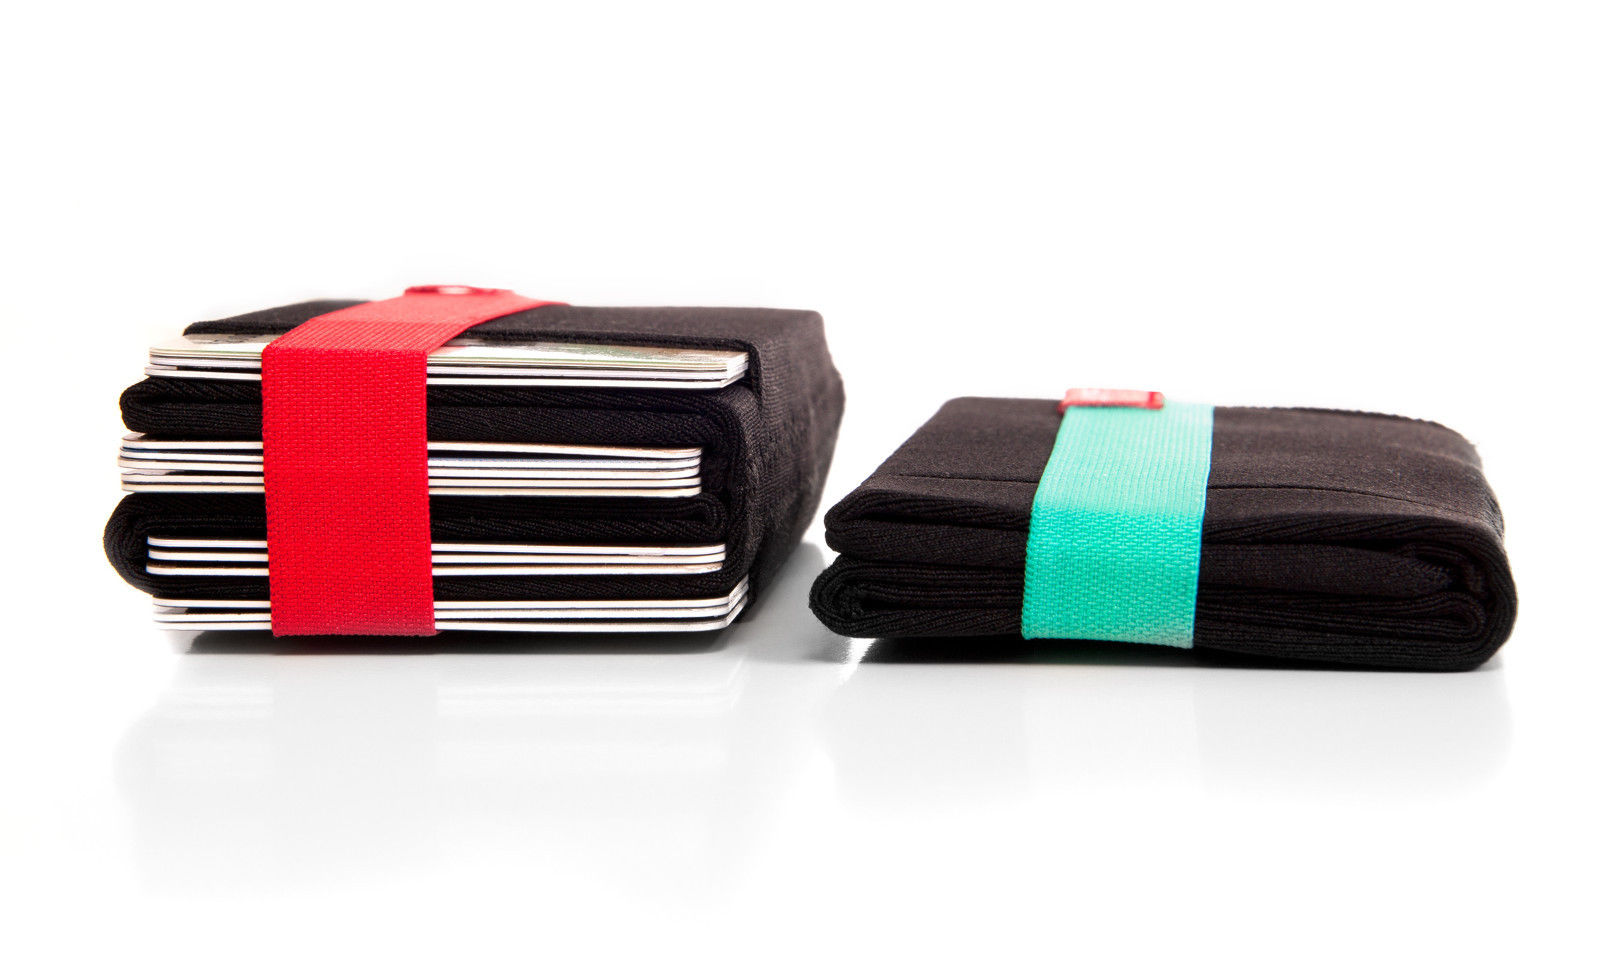 Skint Wallets - A small stretchy fabric wallet perfect for outdoor adventures and the gym. Multiple colorsMSRP $25